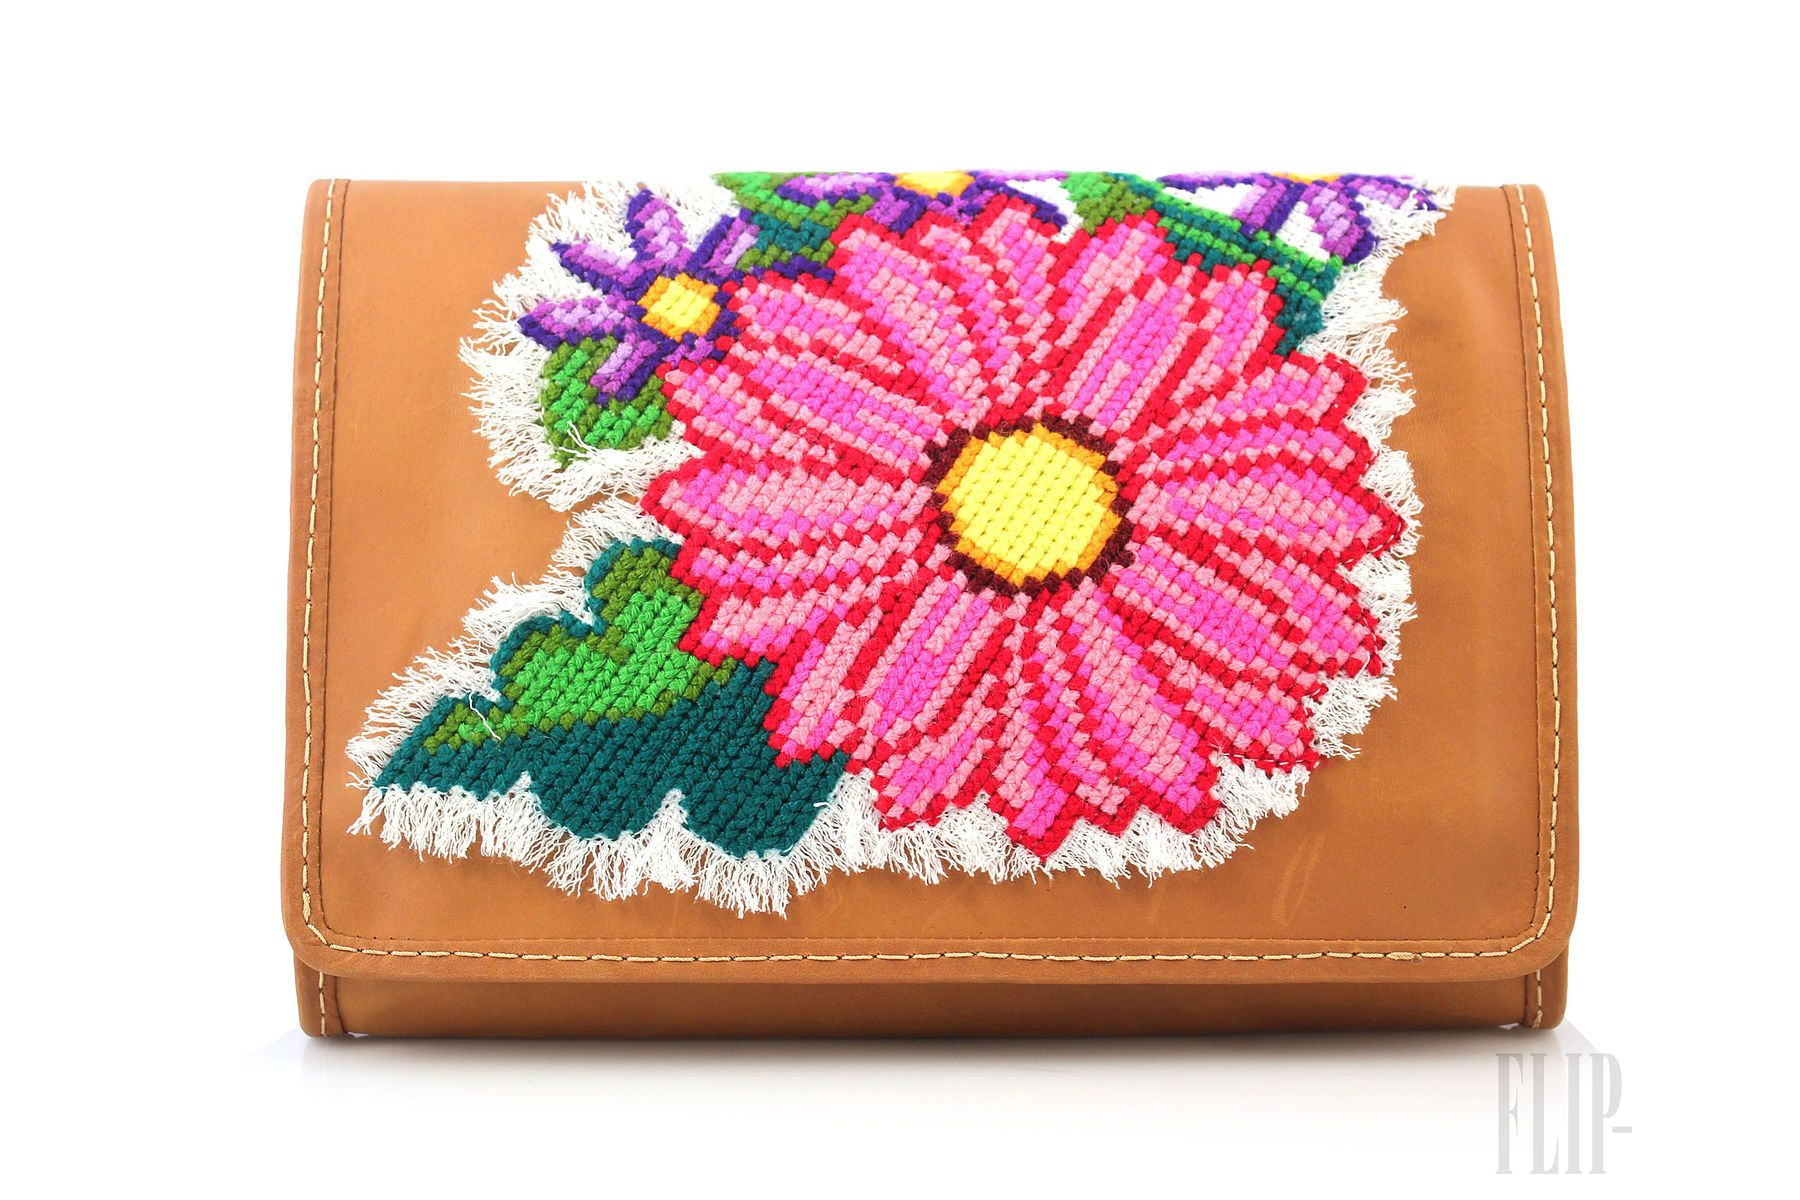 Sarah's Bag - Accessories - 'Mexico' capsule collection - http://www.flip-zone.net/fashion/accessories/bags/sarah-s-bag-4157